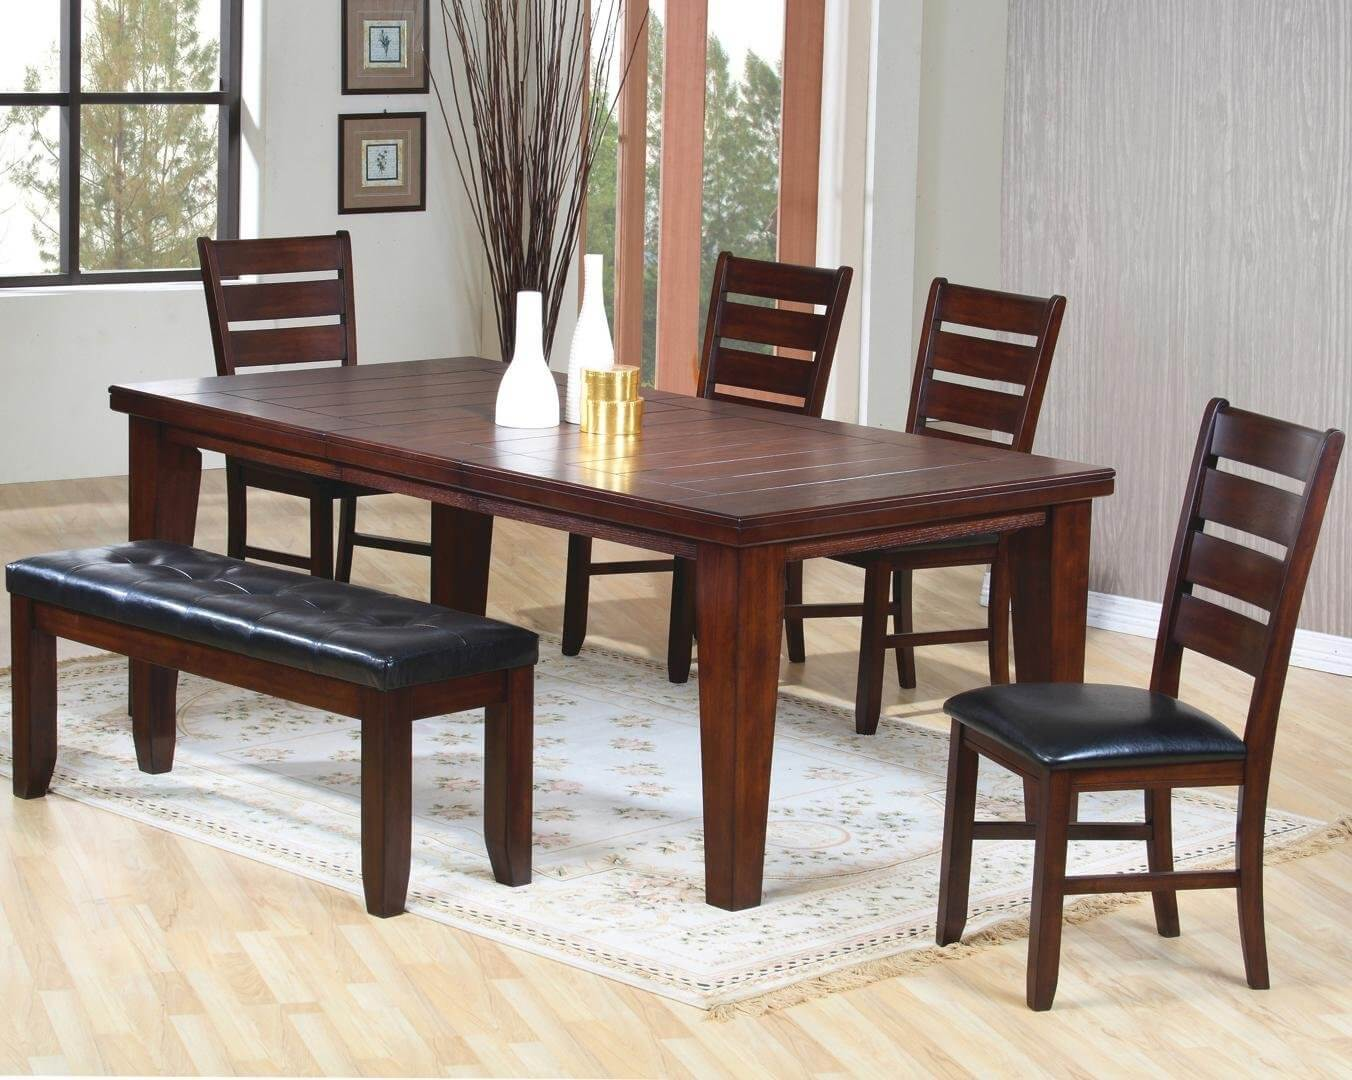 Cheap Kitchen Tables For Small Spaces 26 Dining Room Sets Big And Small With Bench Seating 2019